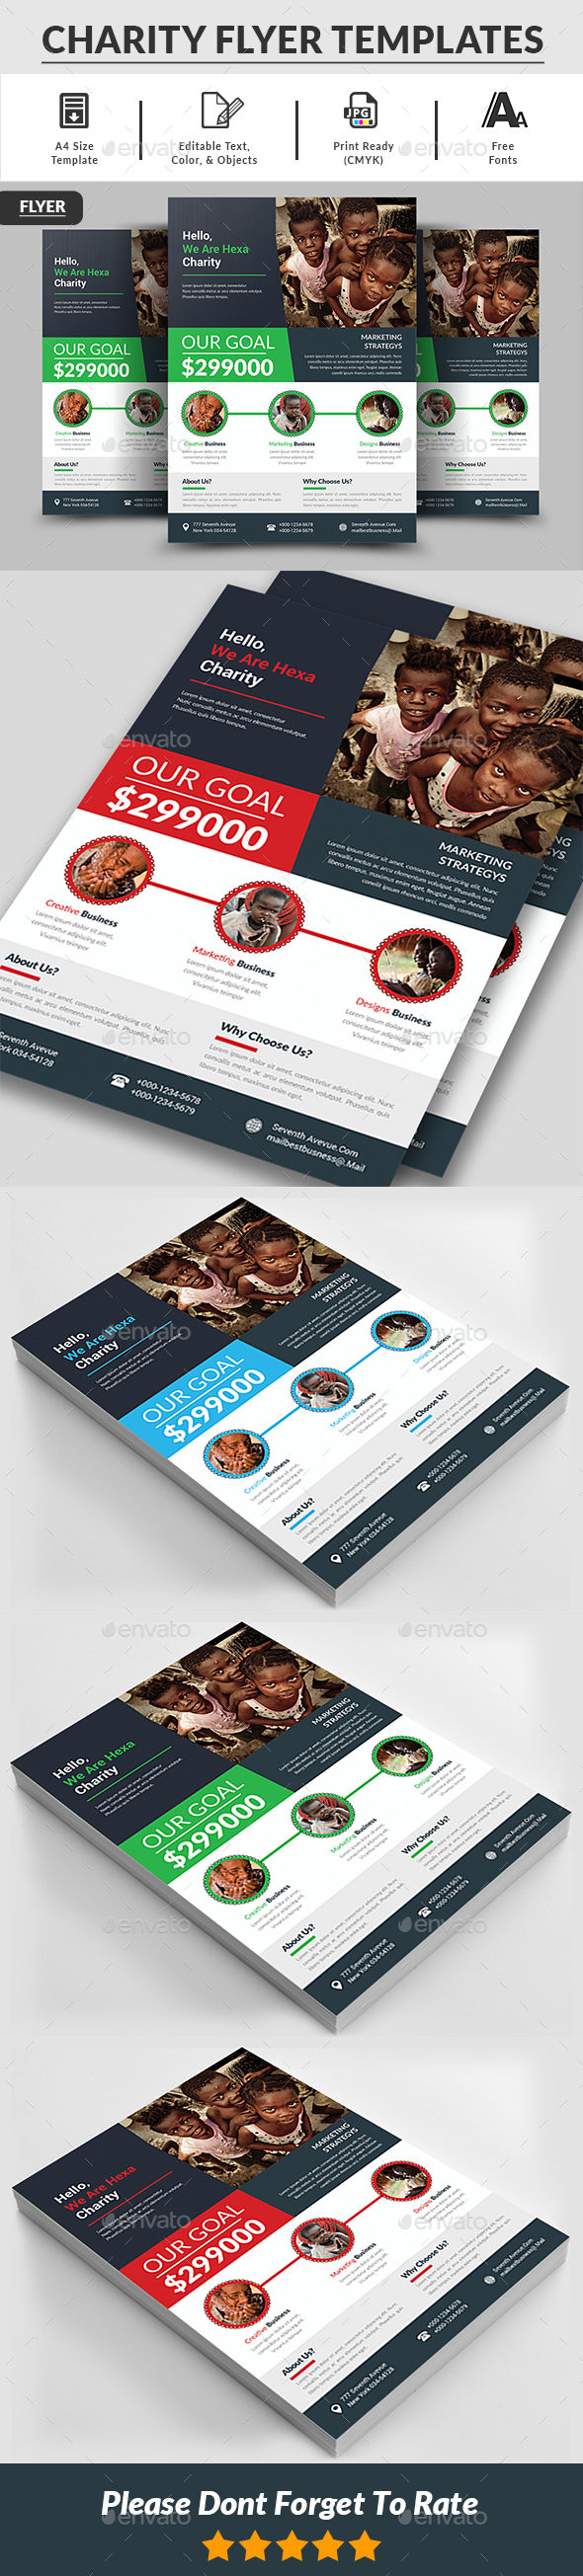 Charity Flyer Templates - Corporate Flyers